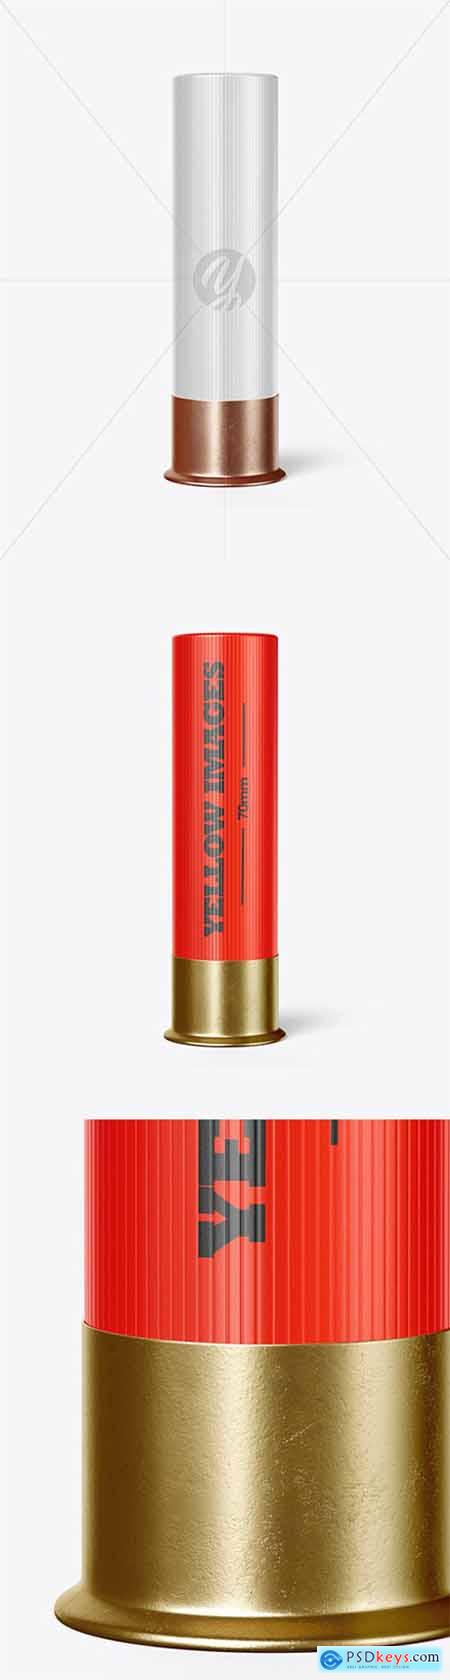 Shotgun Cartridge Mockup 51460